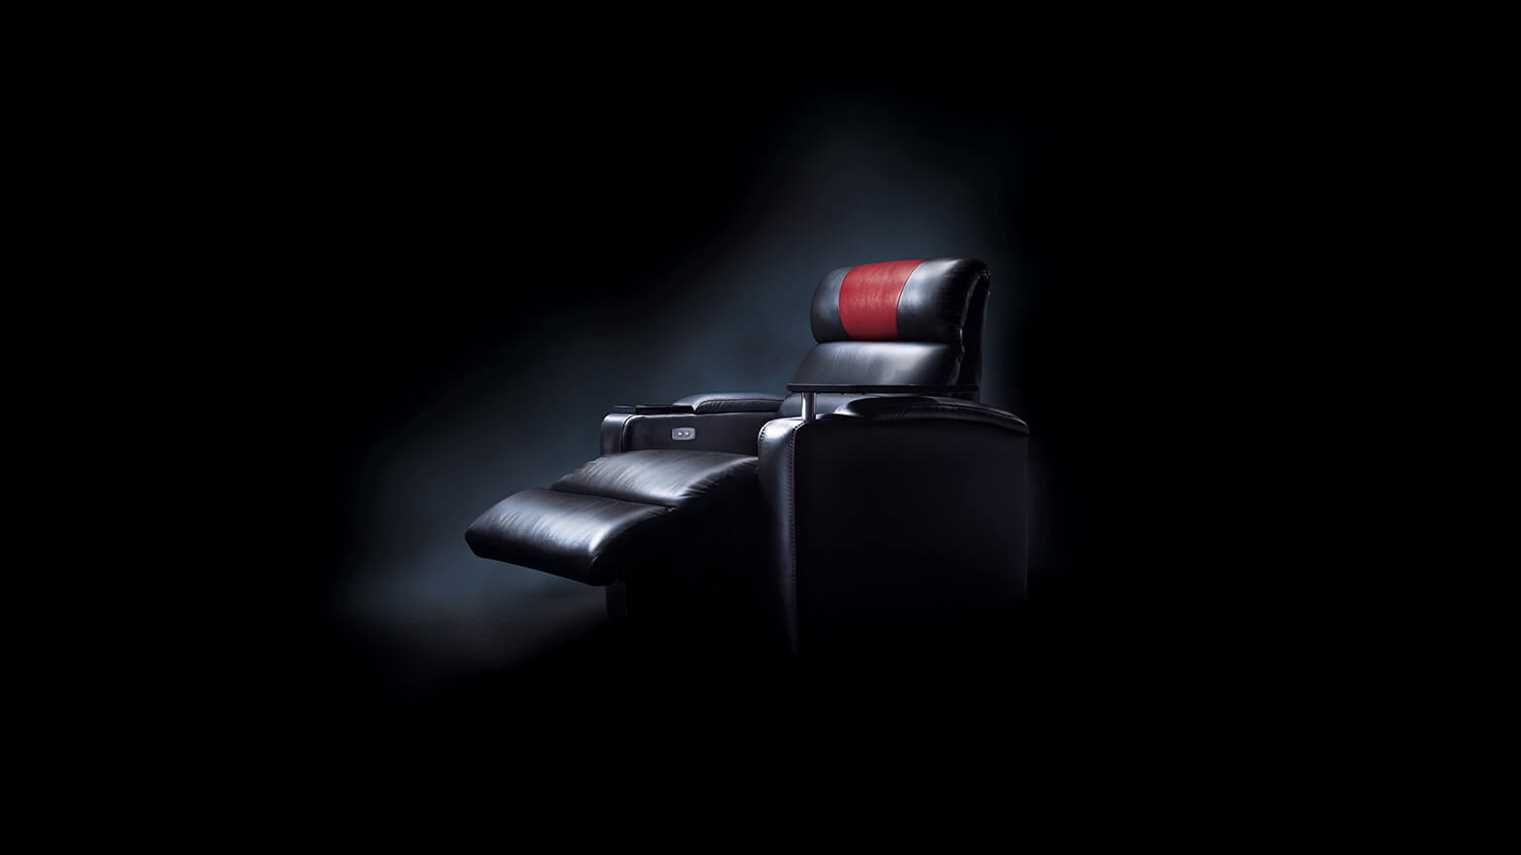 Experience big screen entertainment at Vue. Say hello to The Recliner, the best seat in the house for full-focus, full comfort entertainment.